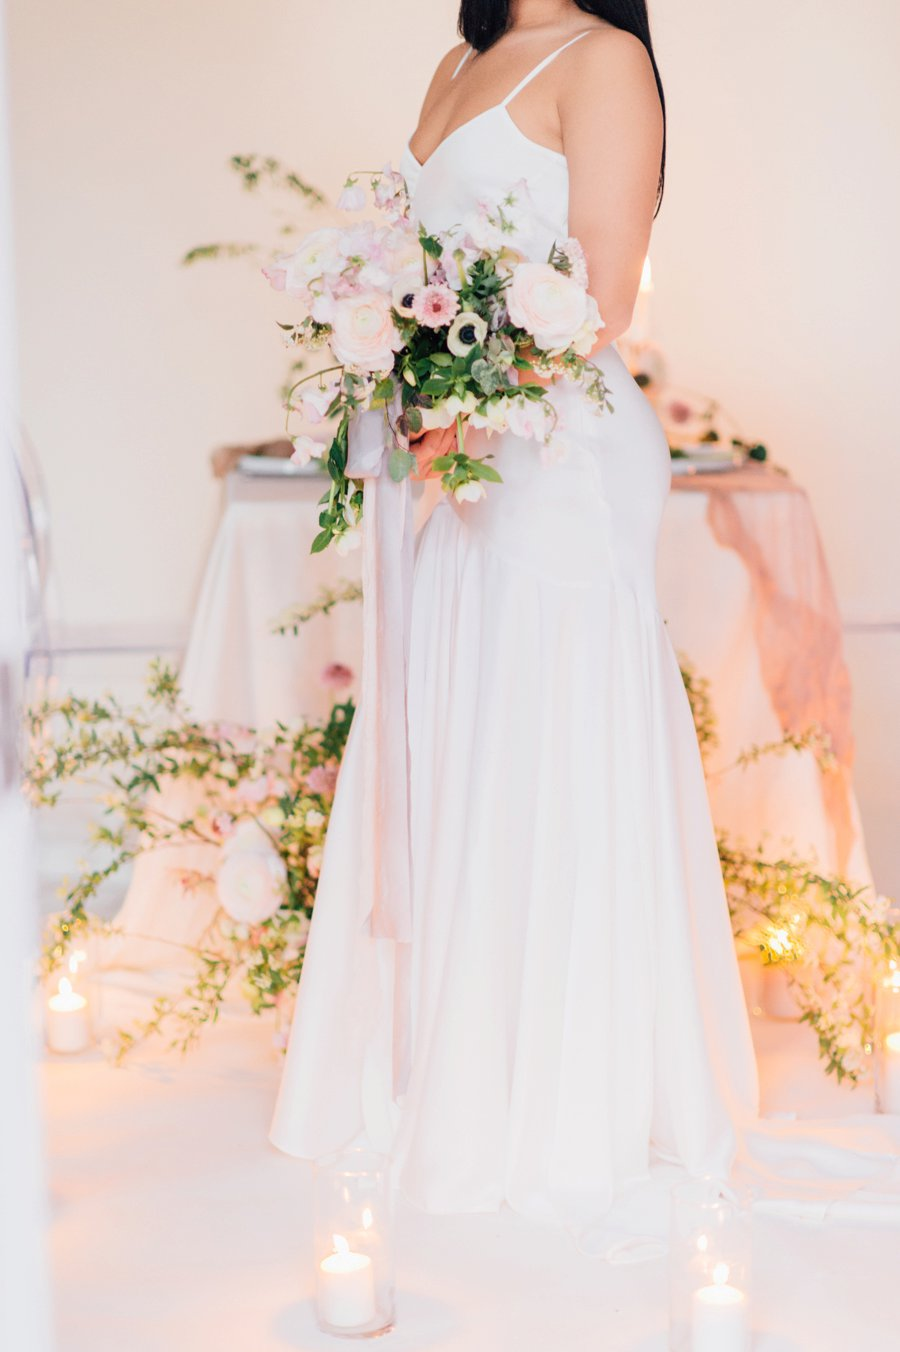 Minimalist Ethereal Wedding Ideas via TheELD.com